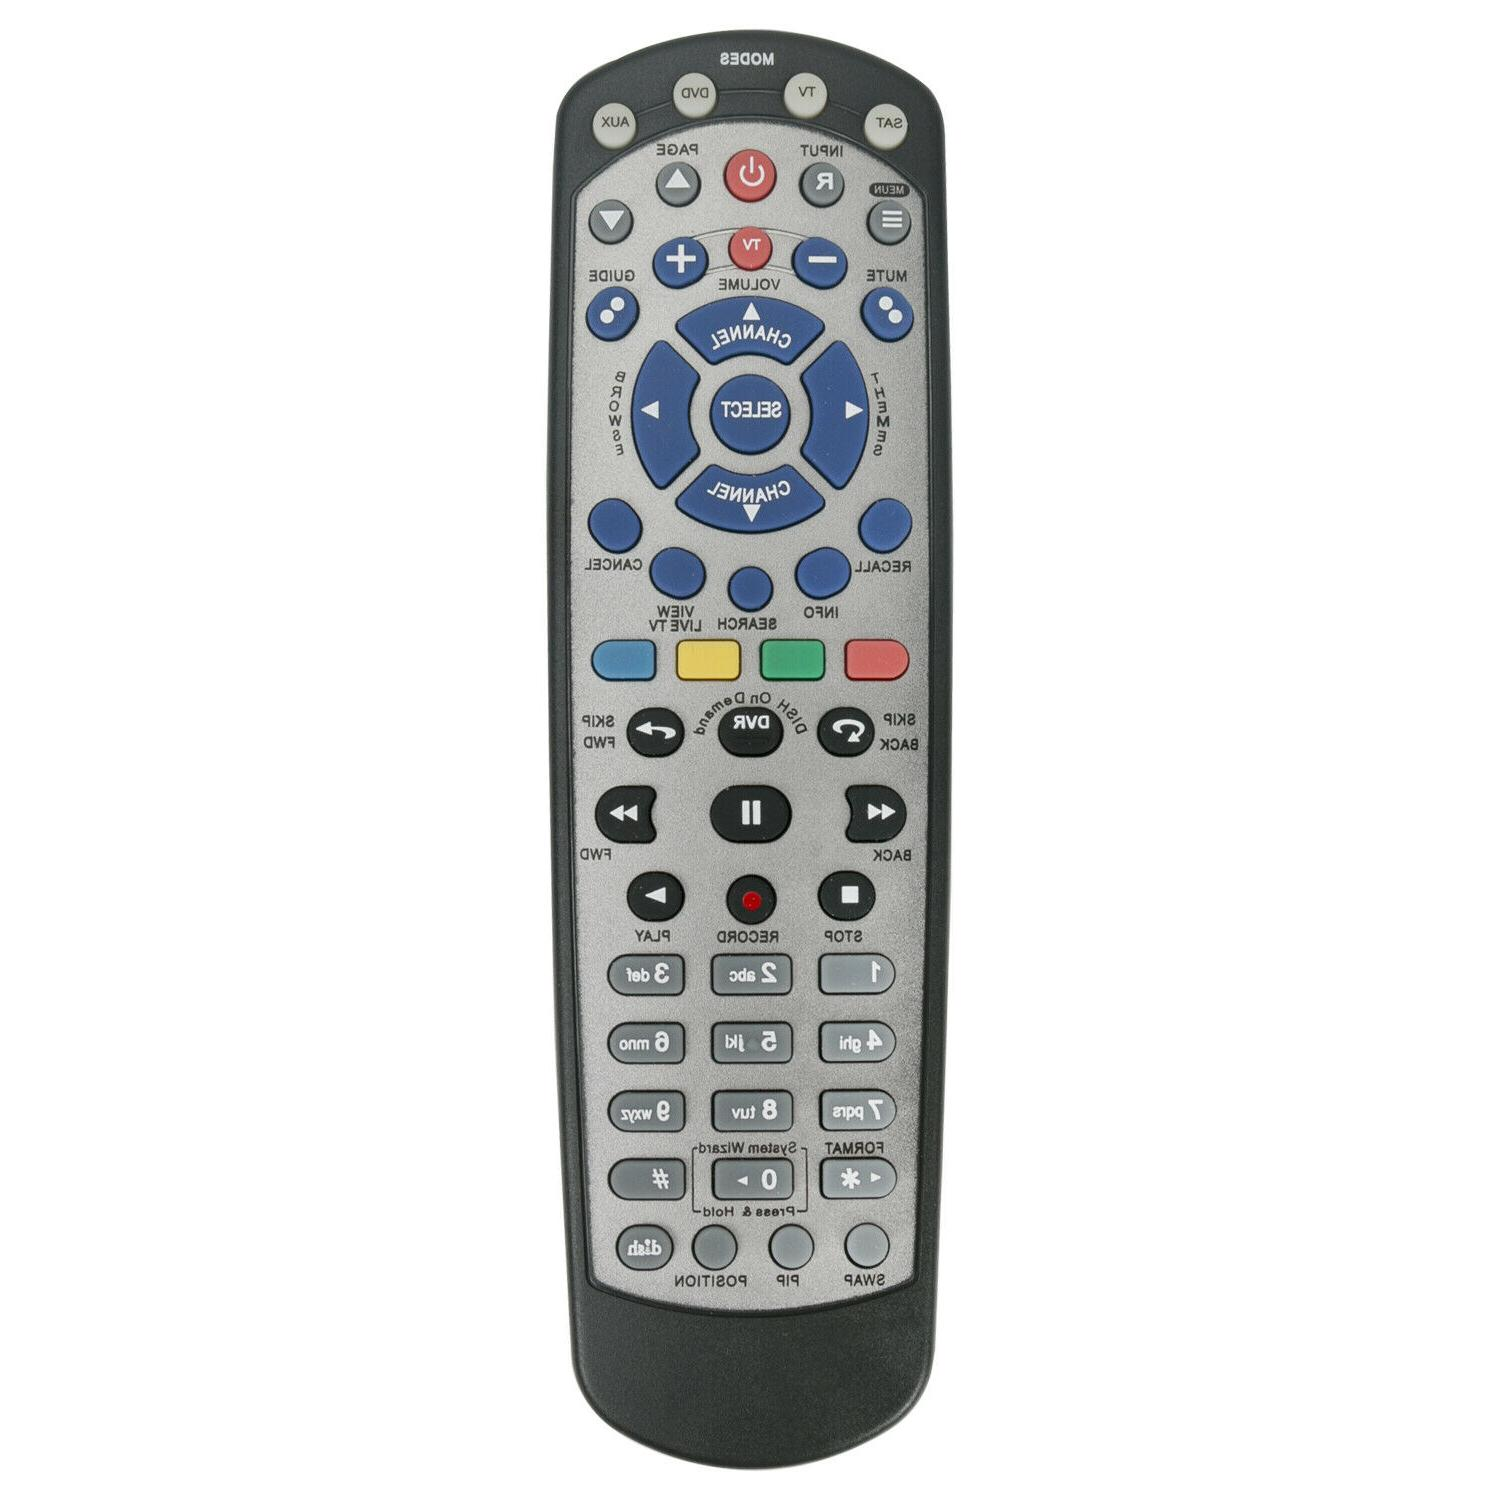 New 20.1 IR TV Satellite Receiver Learning Remote for Dish N